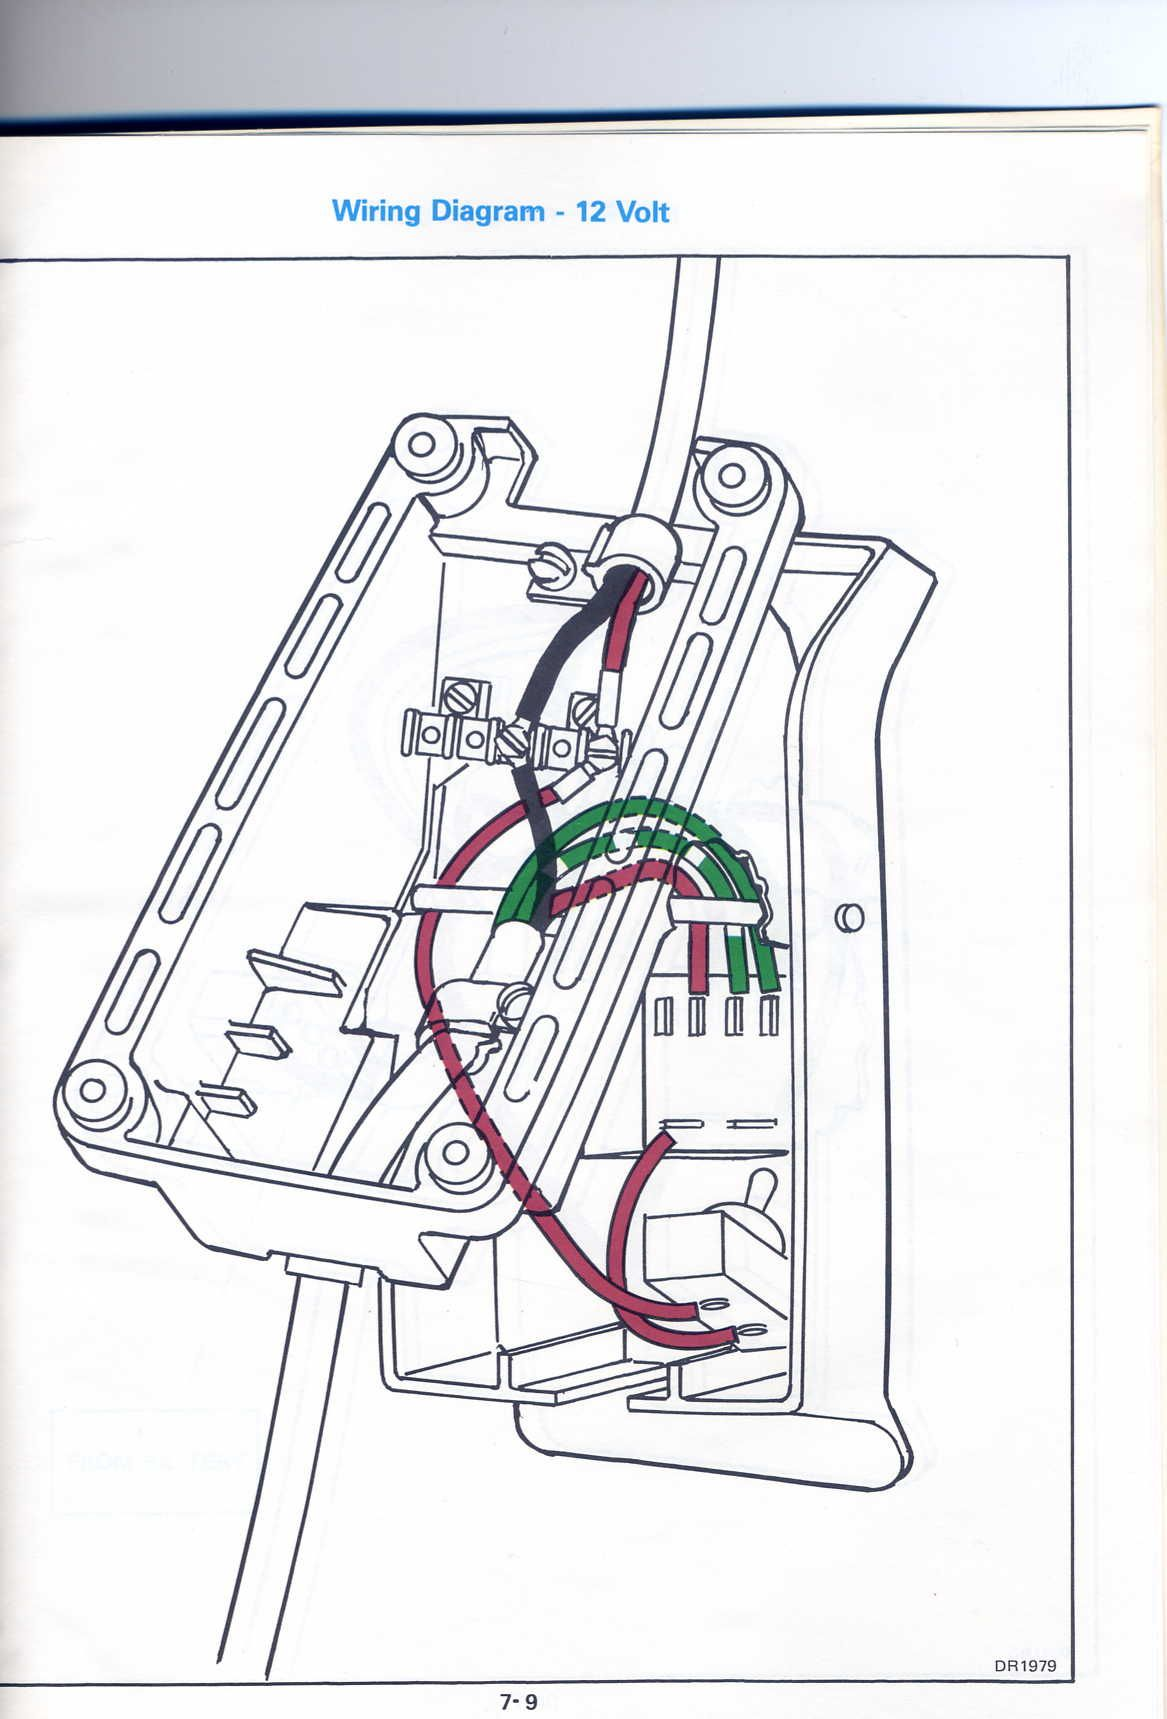 Motorguide Trolling Motor Wiring Diagram  Trying To Repair